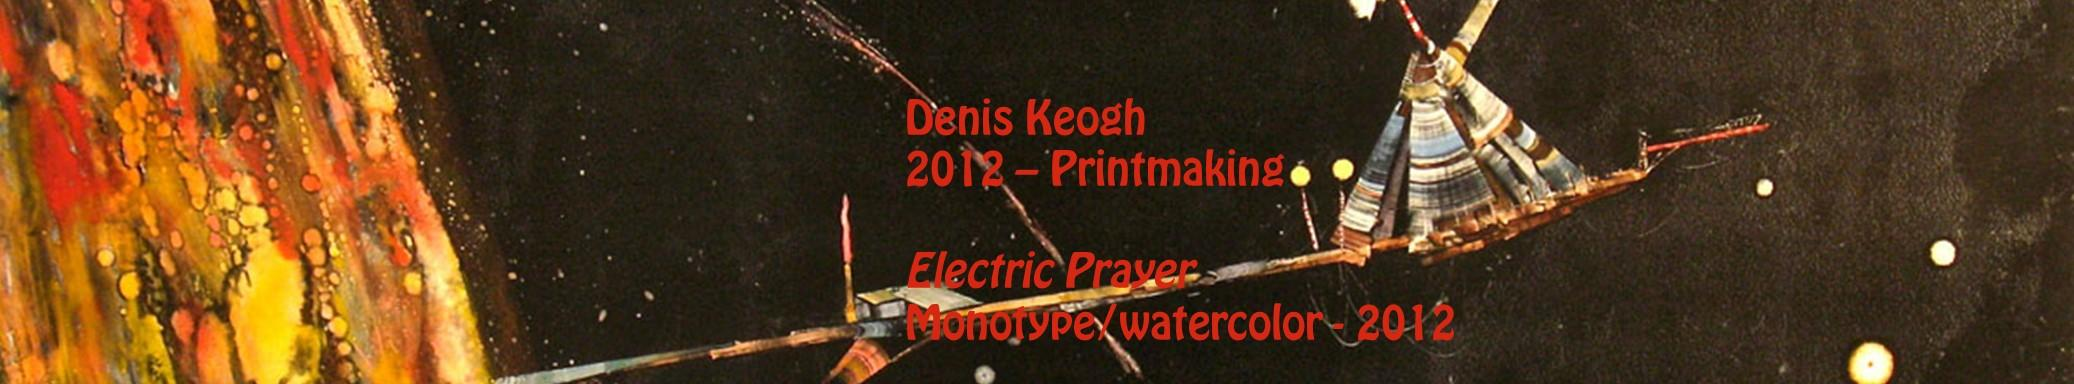 Denis Keogh - Printmaking - Electric Prayer - Monotype, watercolor - 2012